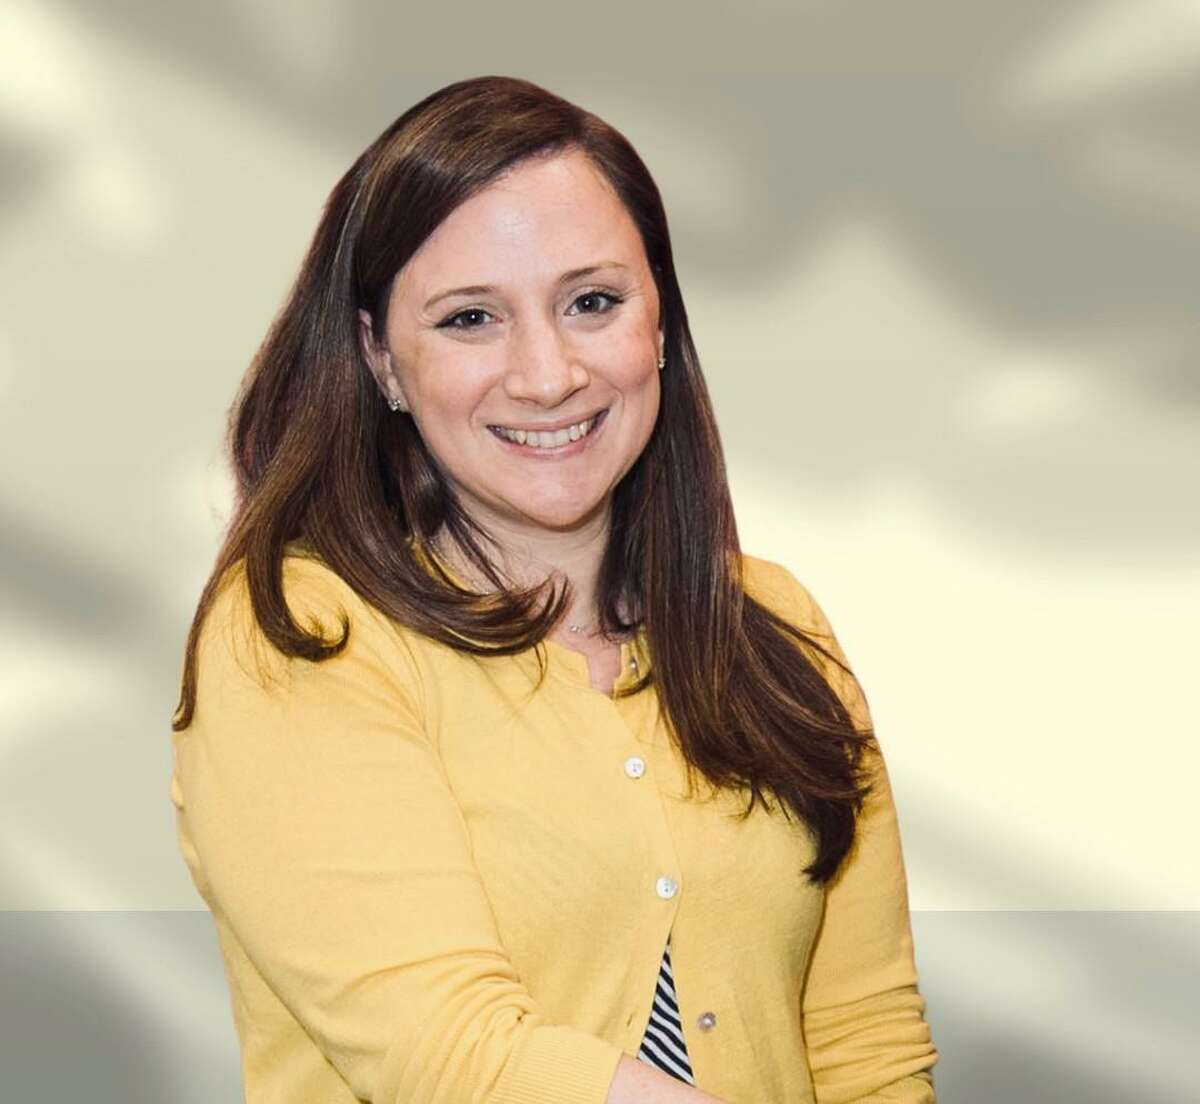 Nancy Caron, of Brookfield, will assume her role as principal of Farmingville Elementary School on July 1. She currently serves as the Curriculum and Instruction Site Director at Rowayton Elementary School in Norwalk.